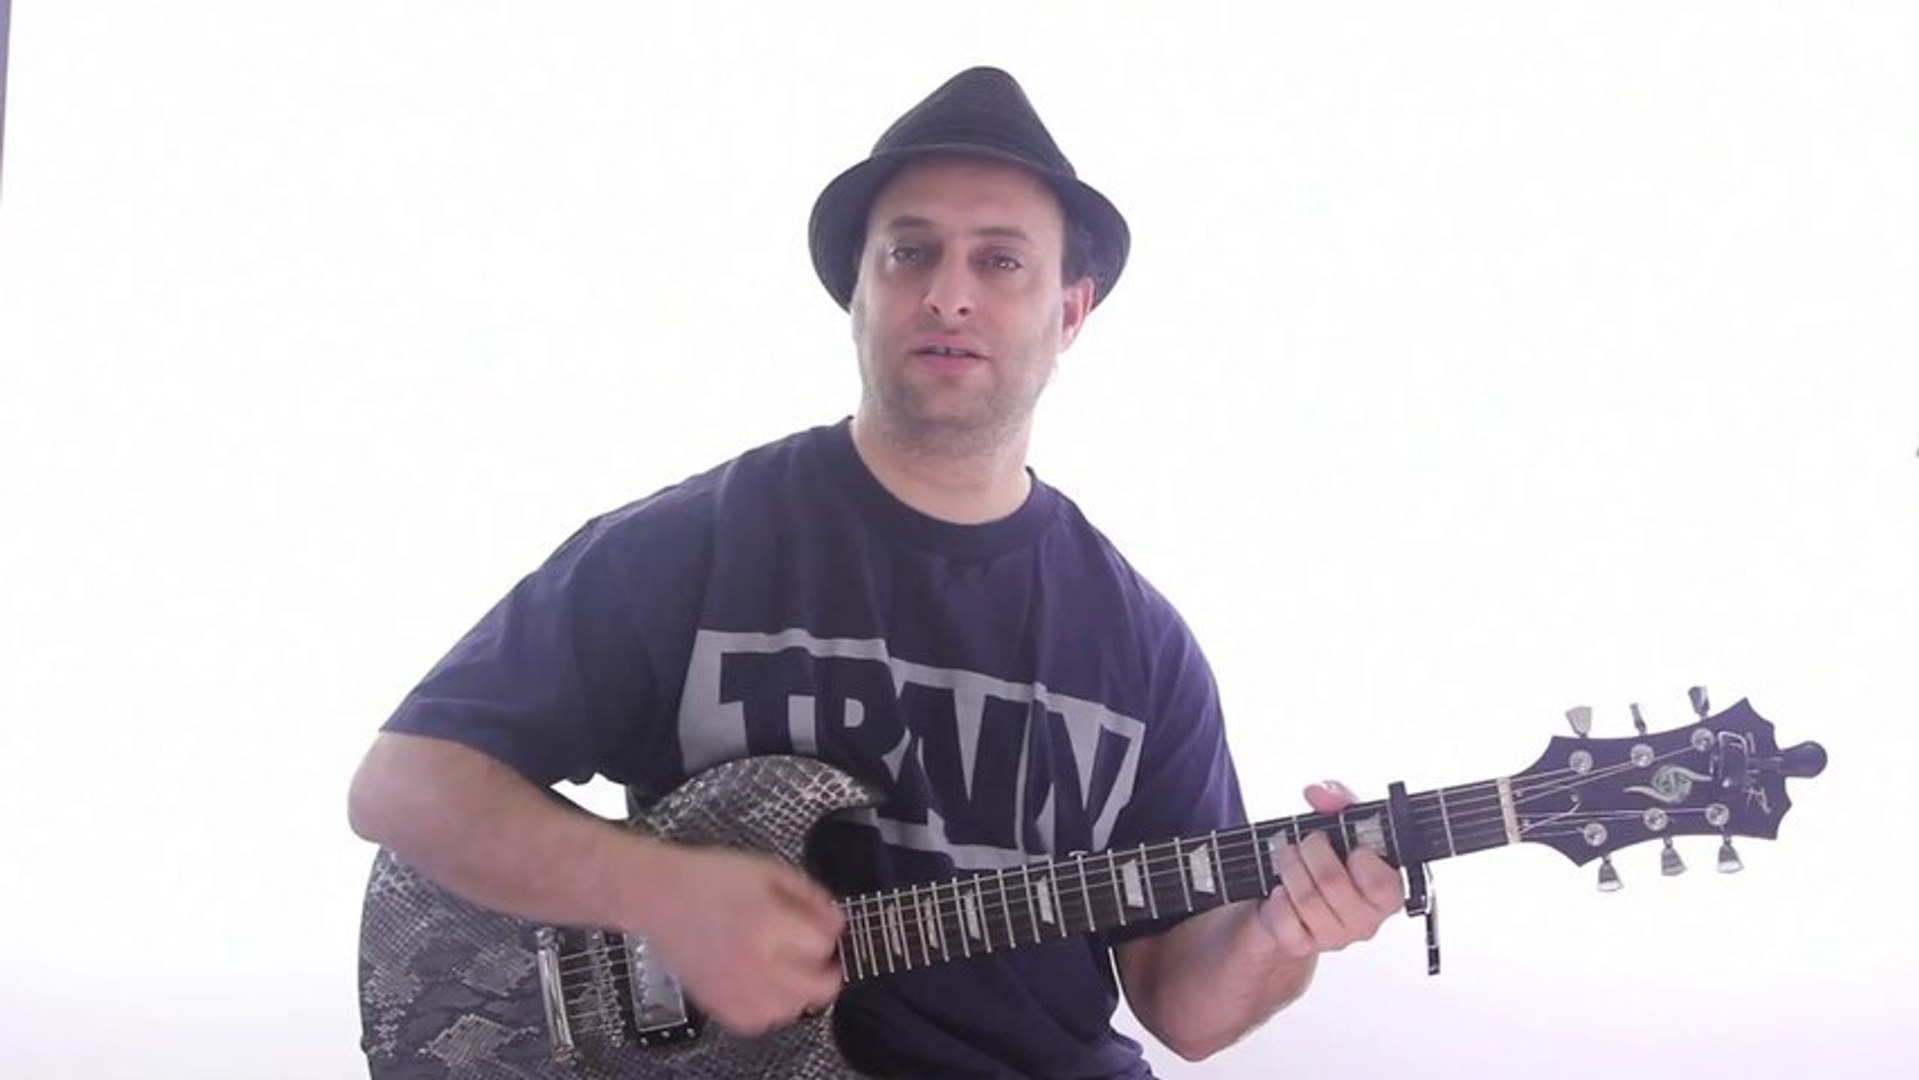 Rhythm Guitar Lesson - Learn How to Play the song Green Eyes by Coldplay